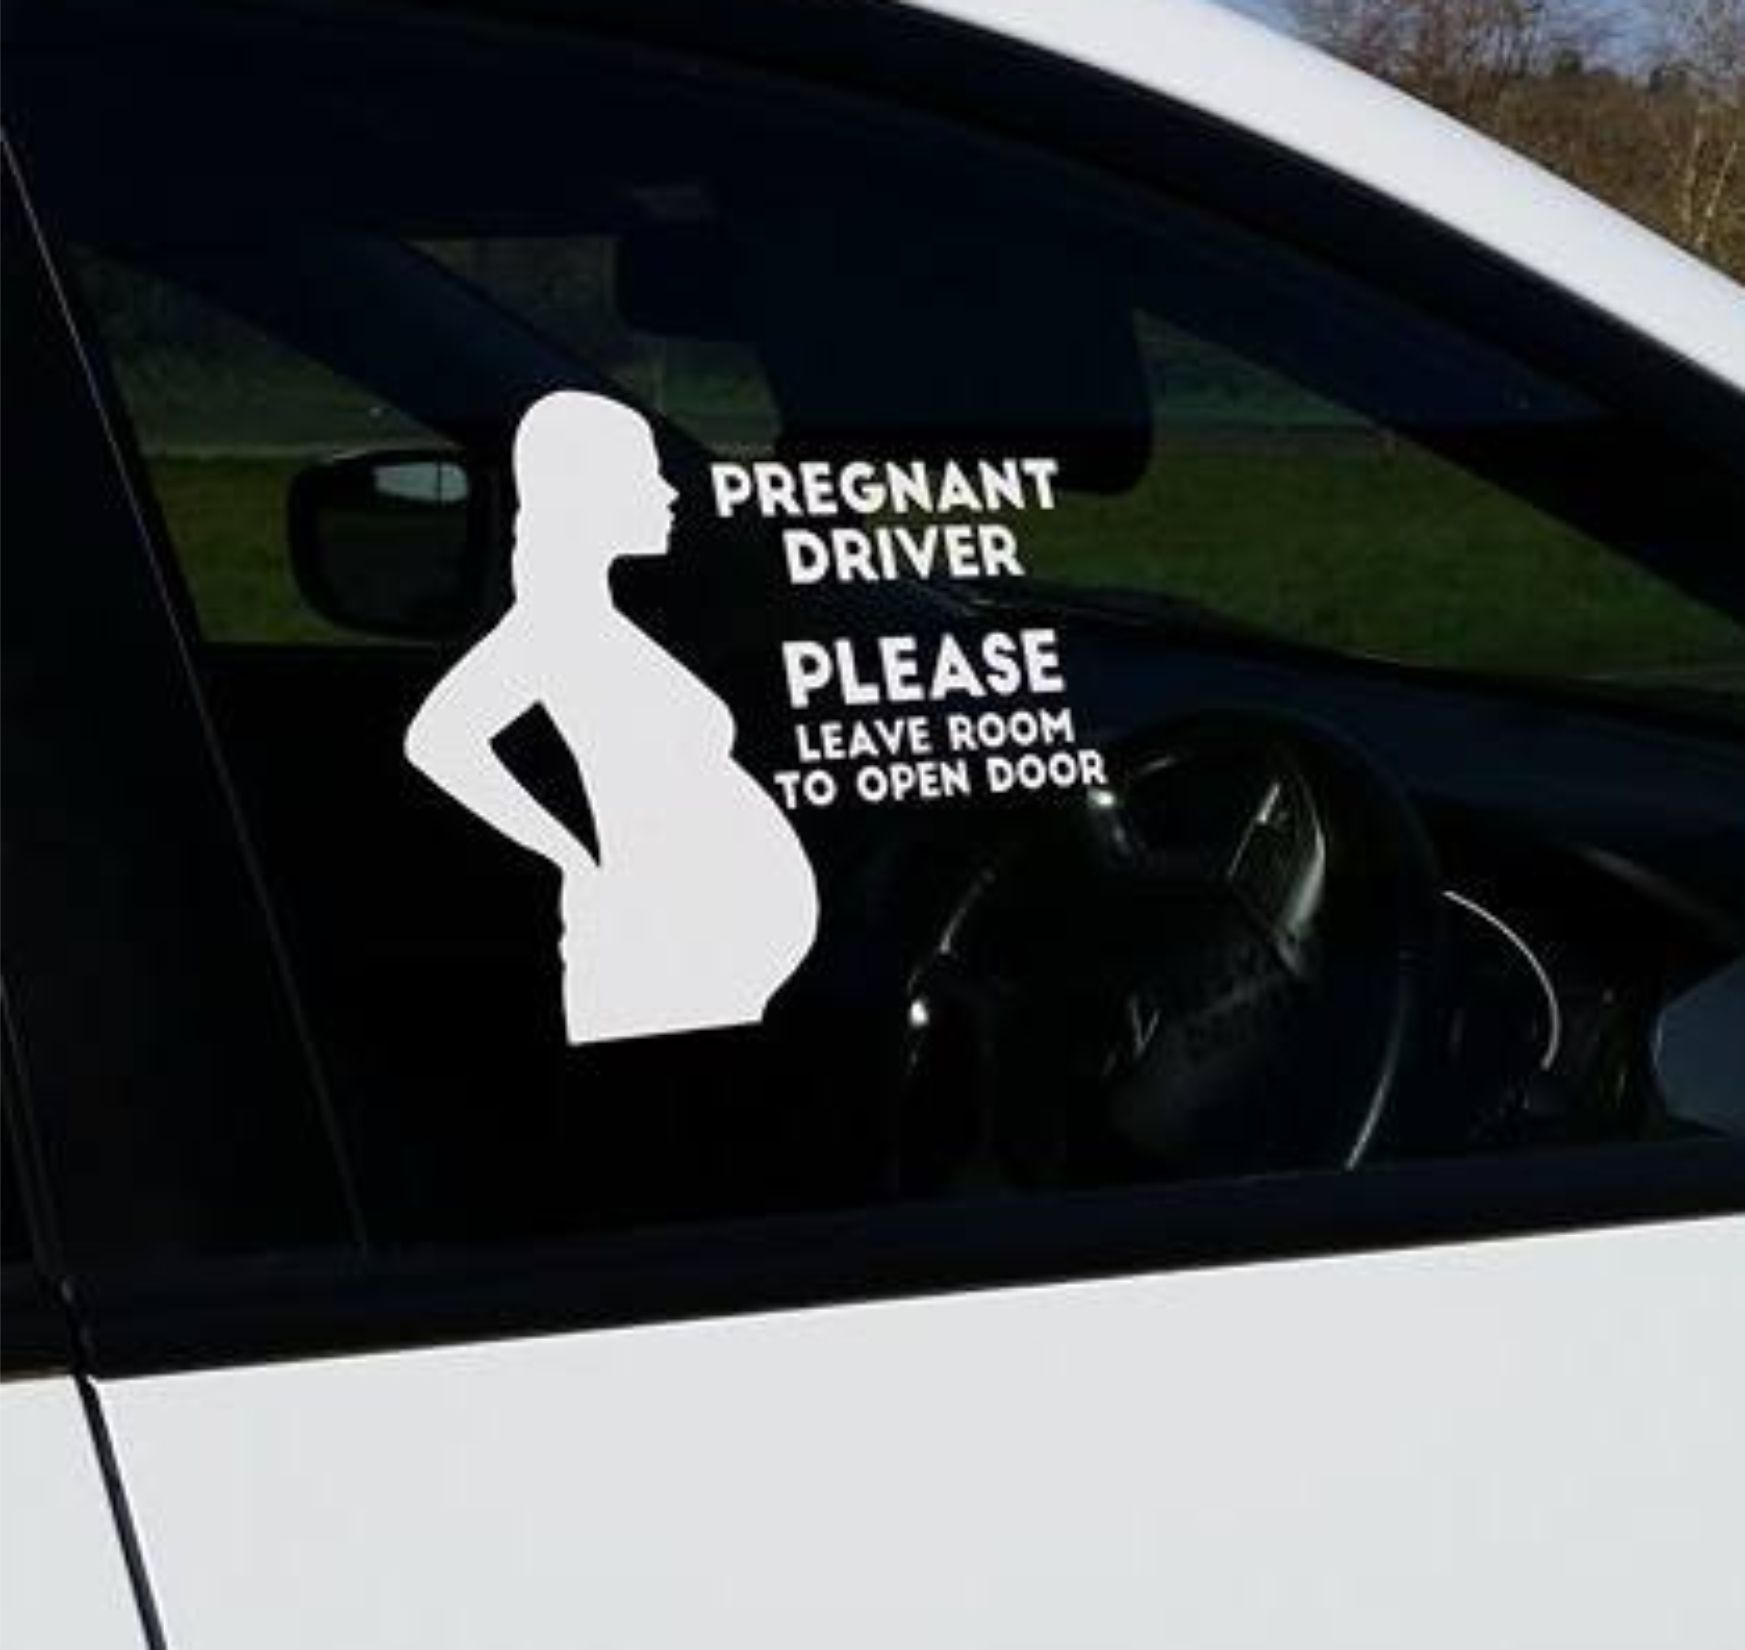 Pregnant driver car sticker 8098 p jpg